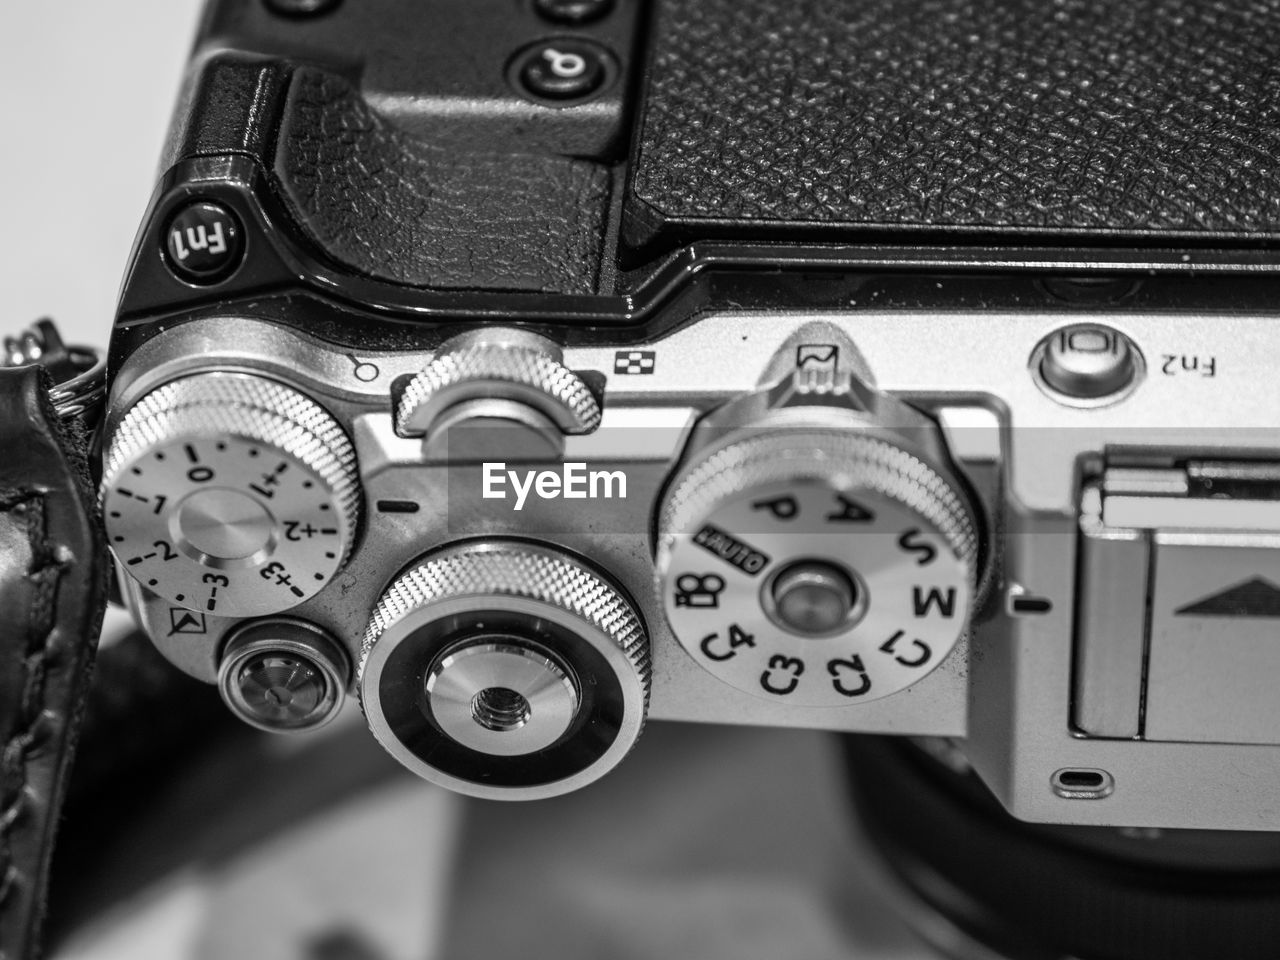 technology, close-up, metal, equipment, indoors, still life, no people, high angle view, number, focus on foreground, camera - photographic equipment, photography themes, machine part, machinery, connection, selective focus, detail, retro styled, computer part, silver colored